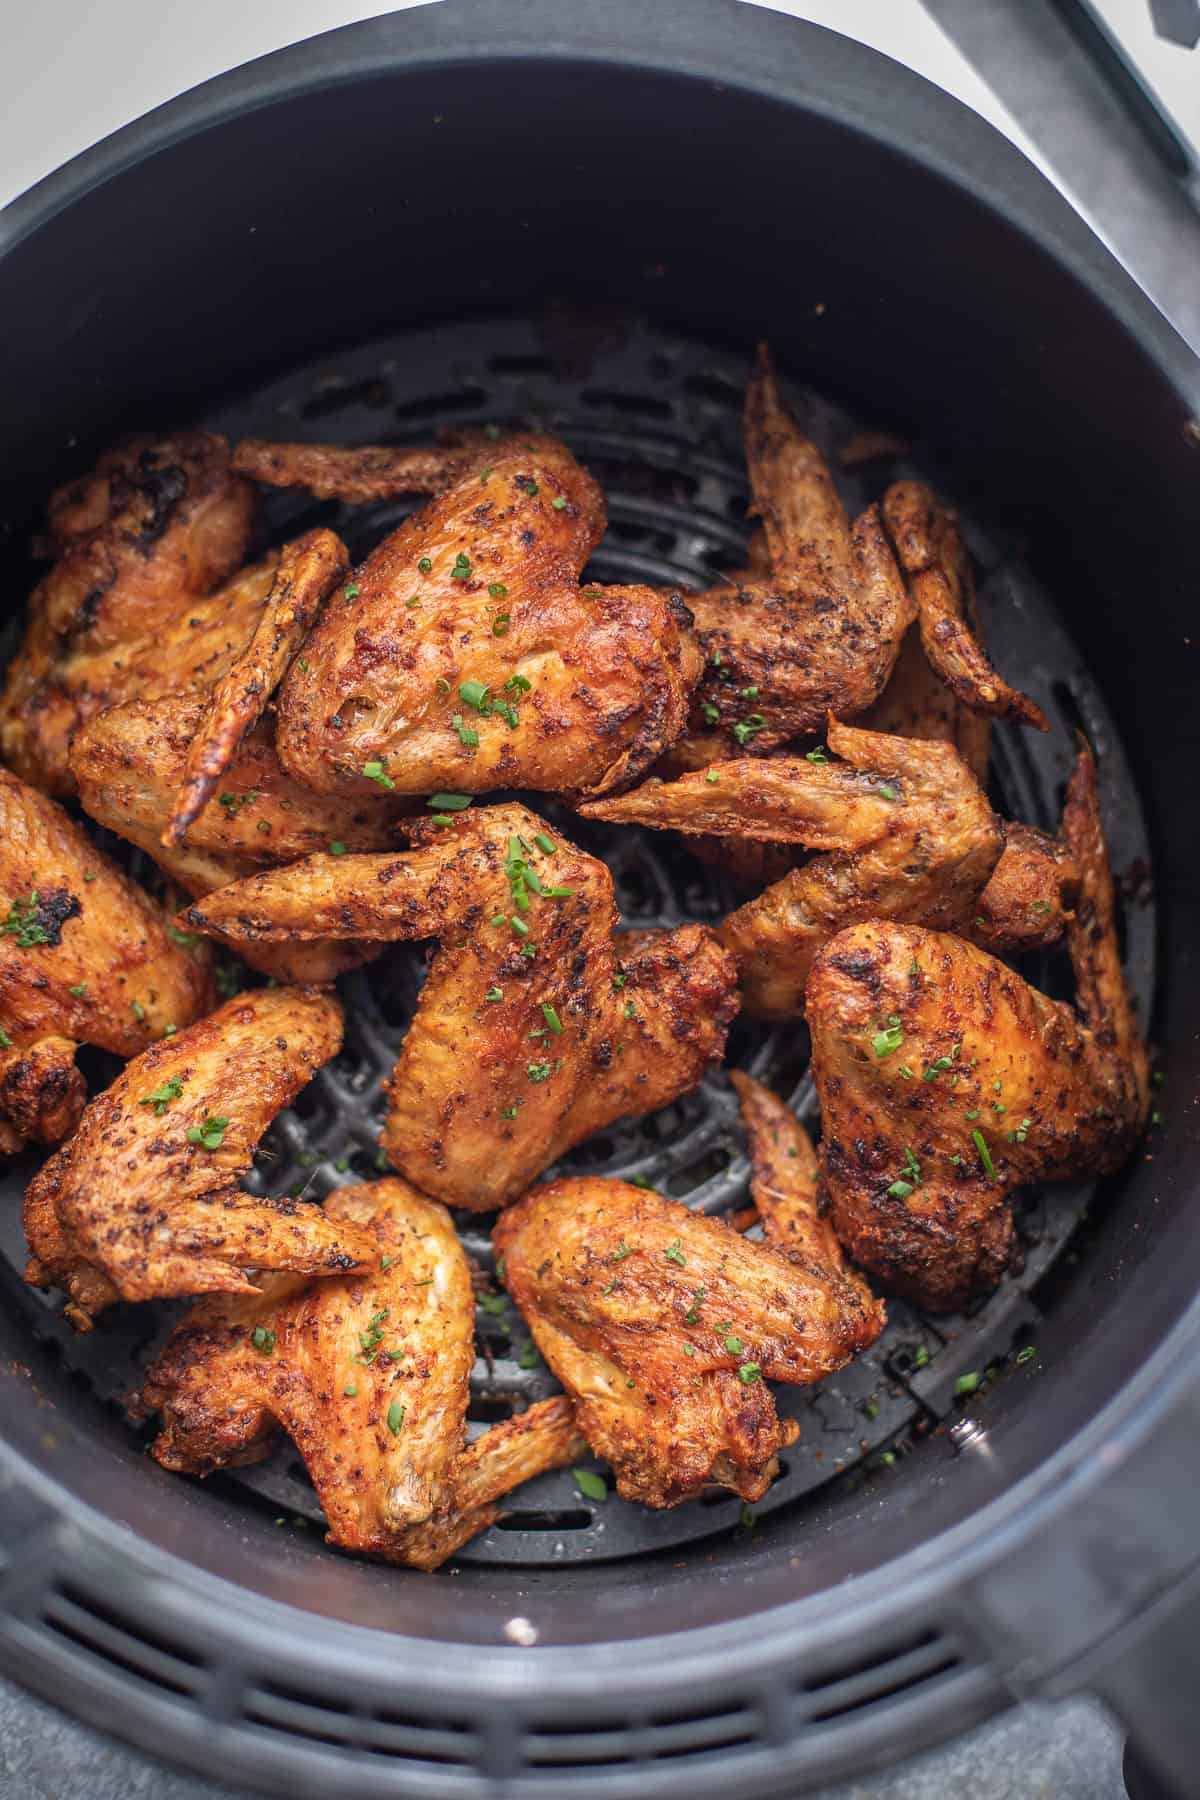 Chicken wings in the air fryer, overhead view.